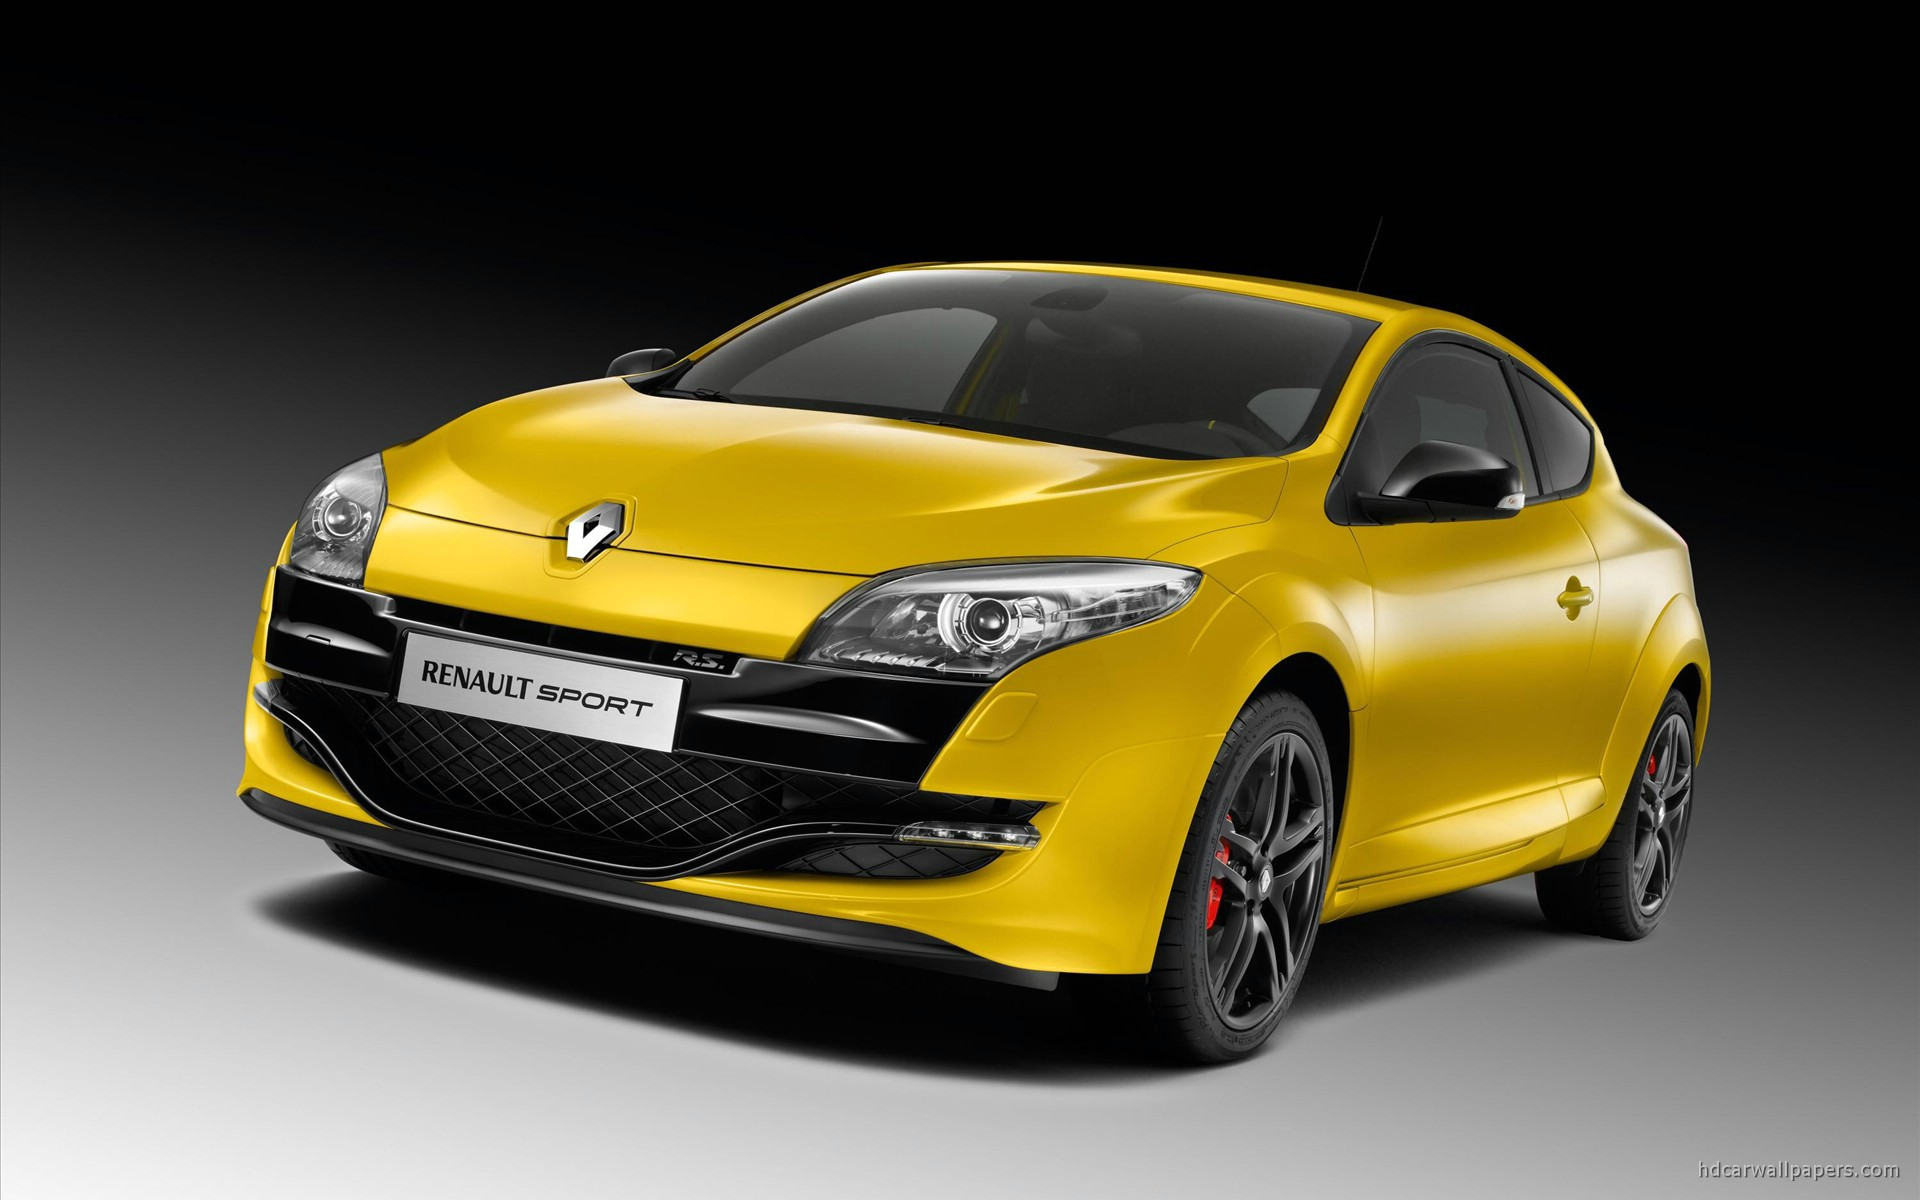 2010 new megane renault sport wallpaper hd car wallpapers. Black Bedroom Furniture Sets. Home Design Ideas